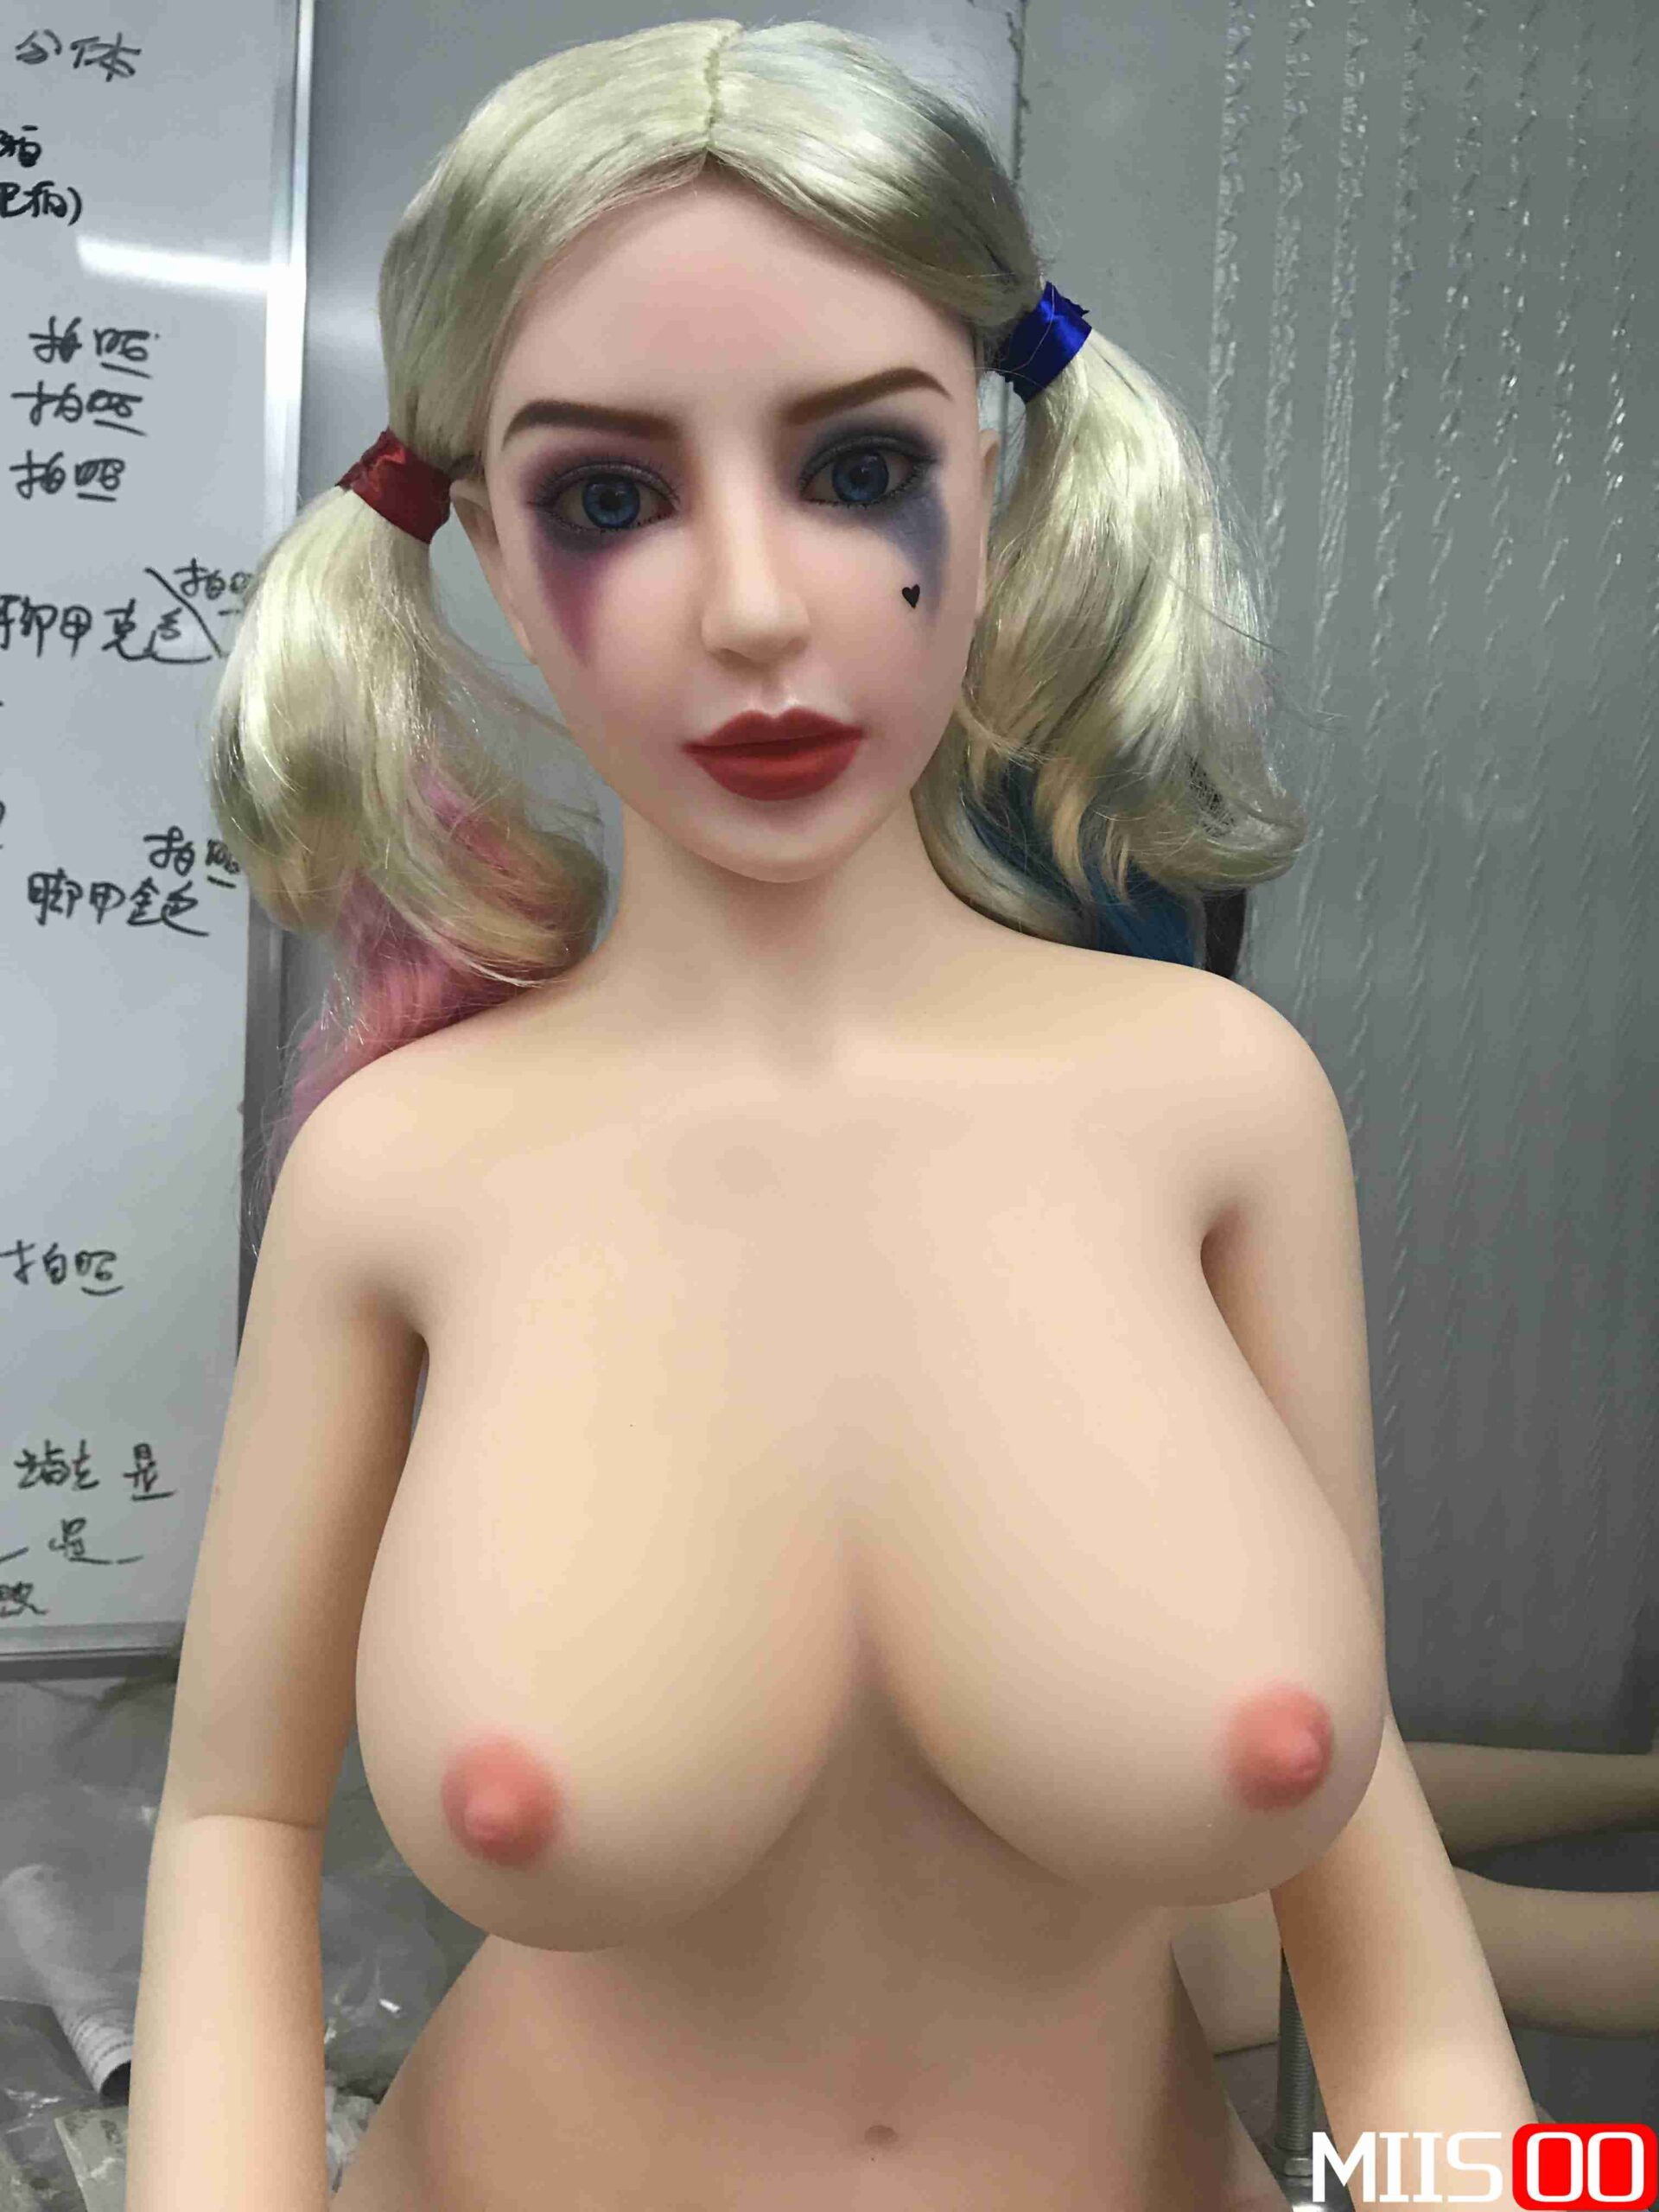 Sex Doll Gallery-MiisooDoll